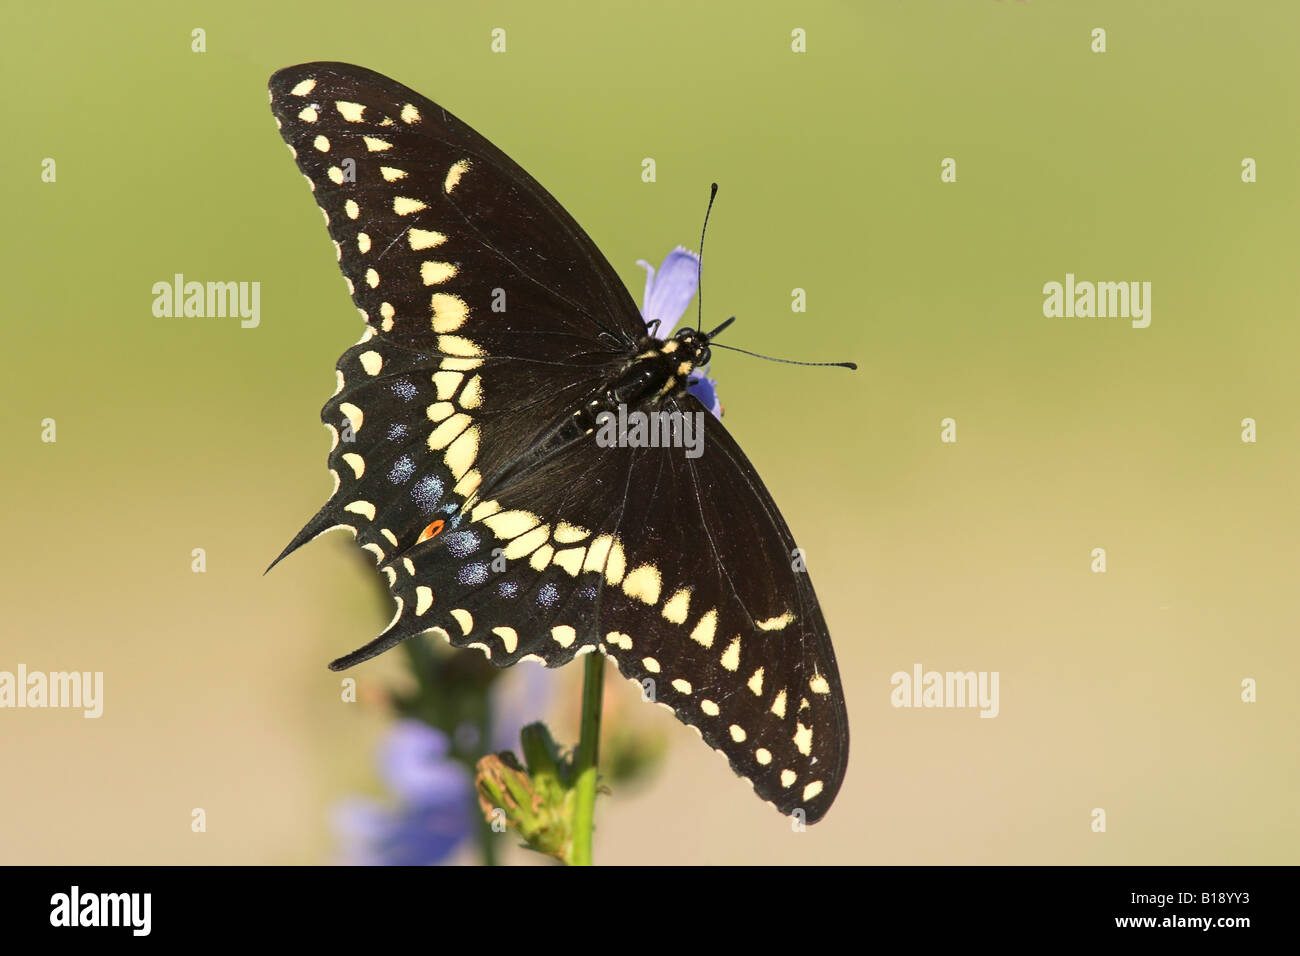 A Black Swallowtail Butterfly (Papilio Polyxenes) On A Chicory Plant In  Etobicoke, Ontario, Canada